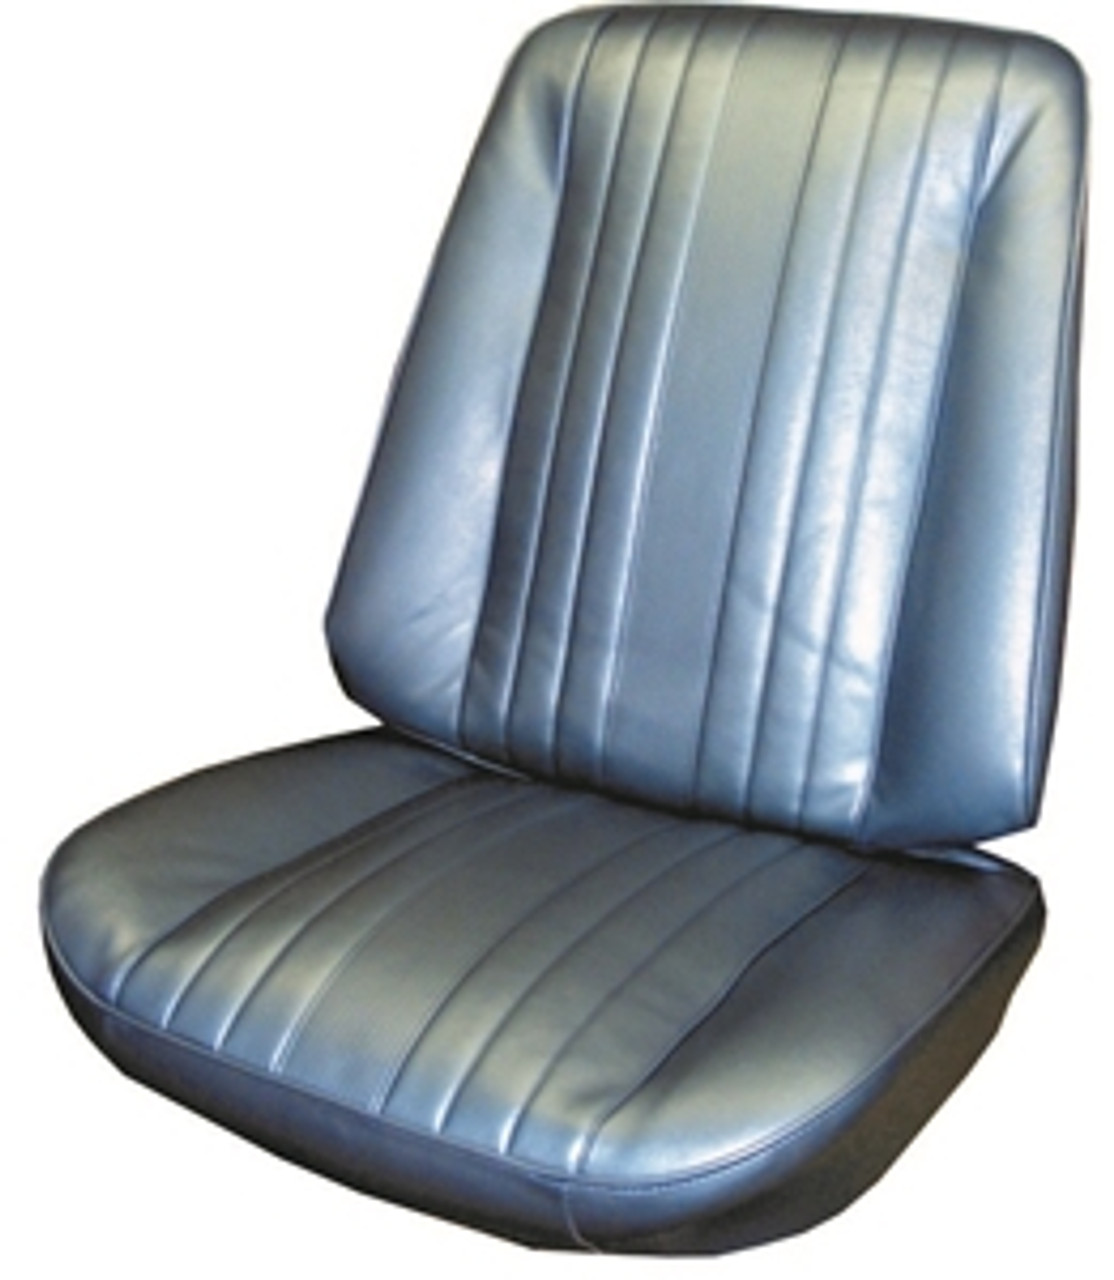 1969 Chevelle or El Camino Front Seat Covers